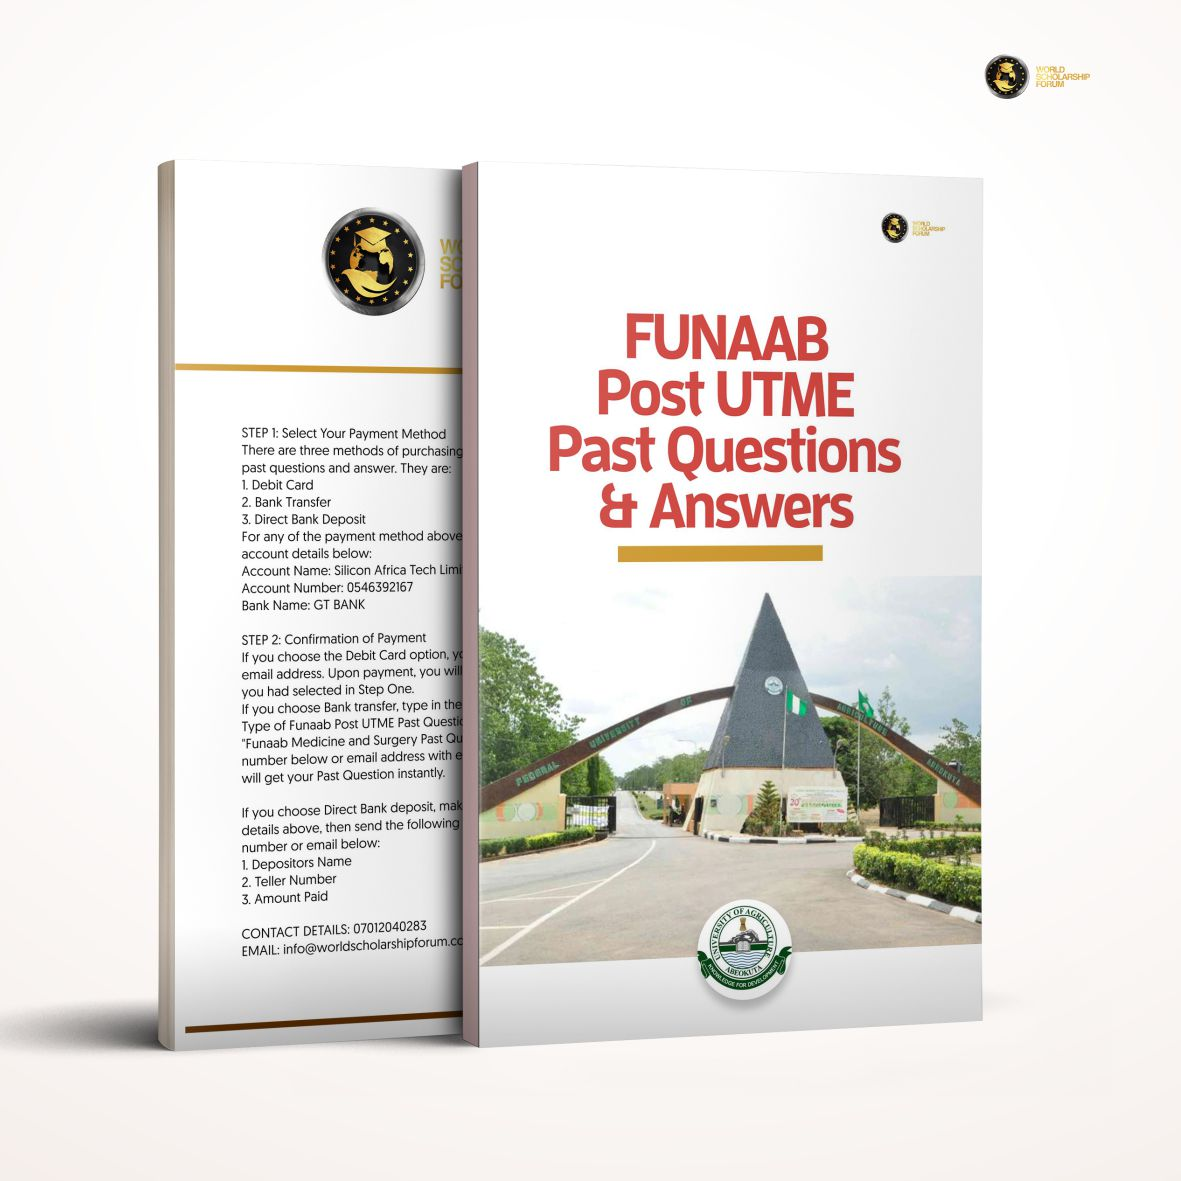 funaab-post-utme-past-questions-answers